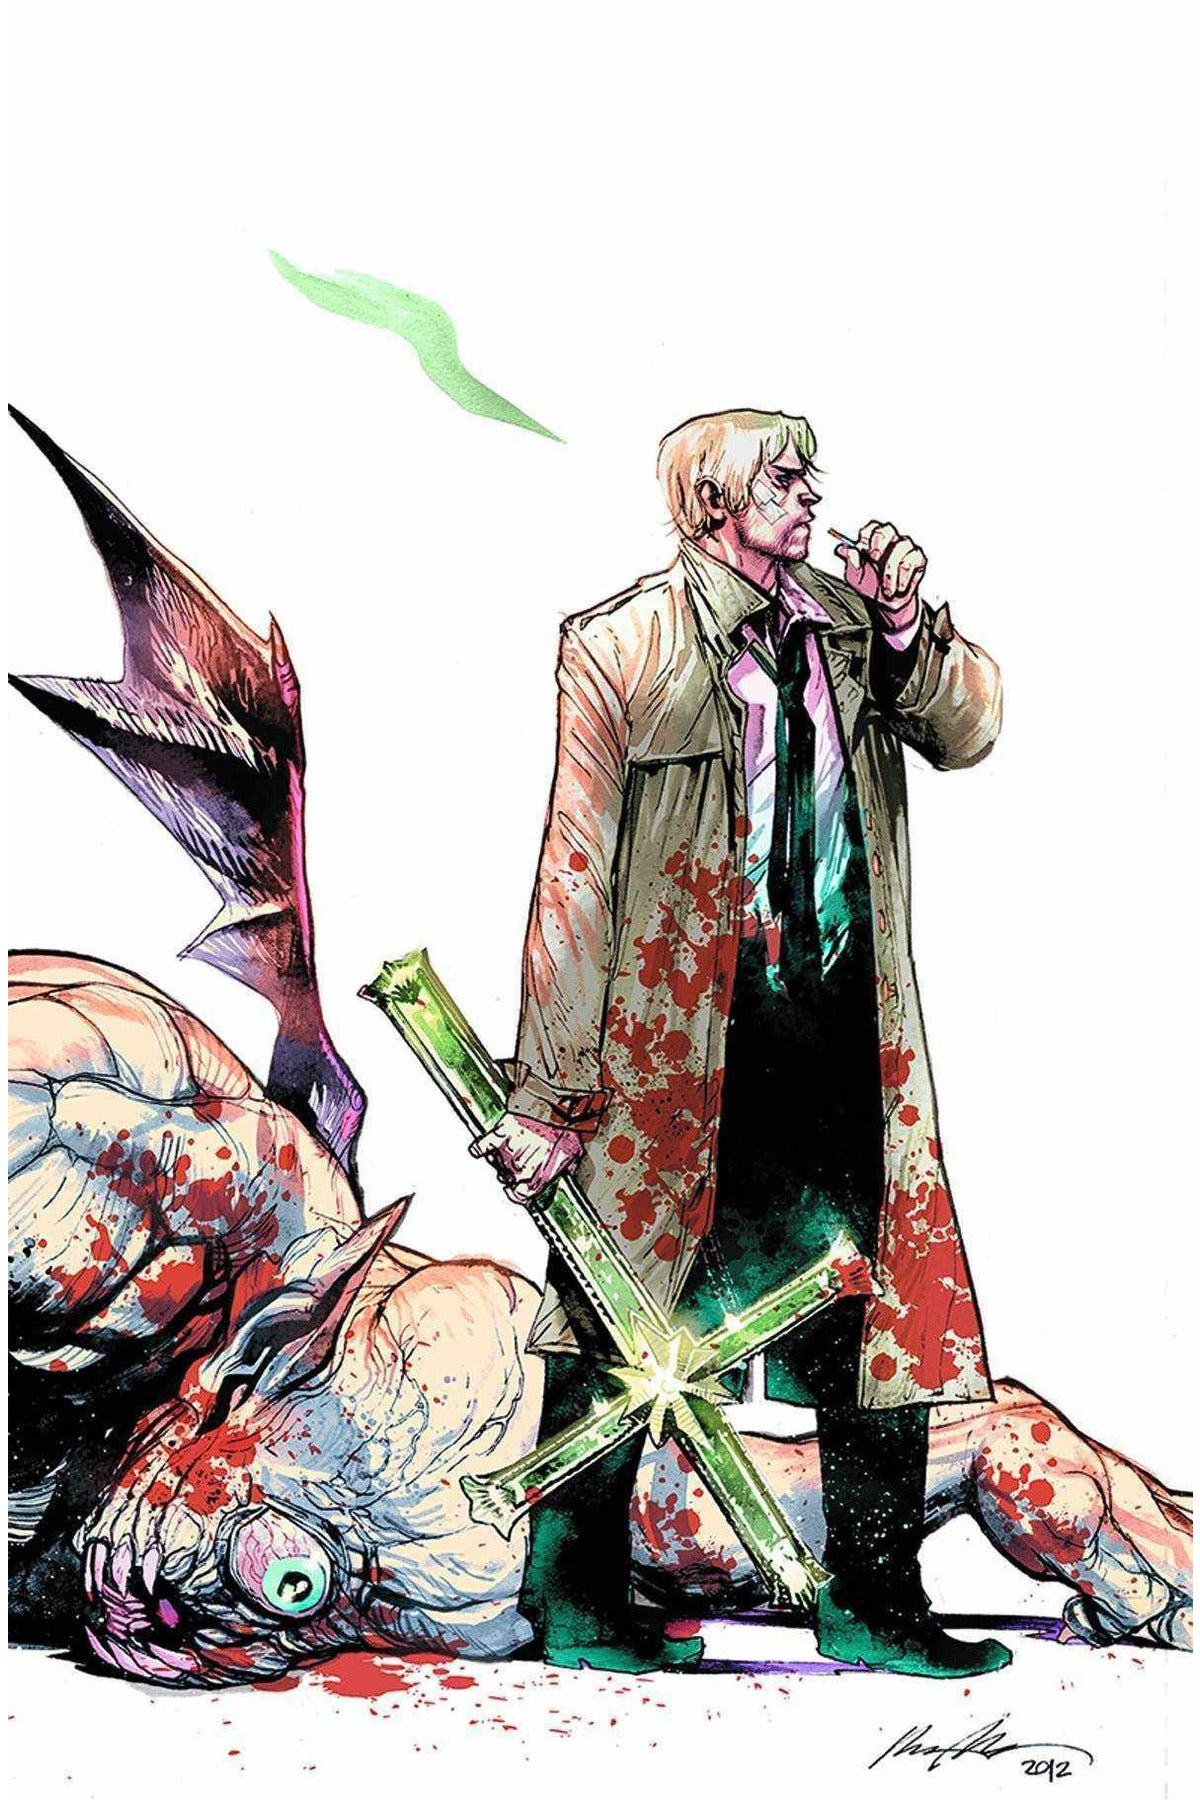 hellblazer-vol-6-bloodlines-diamond-9781401240431-thegamersden.com